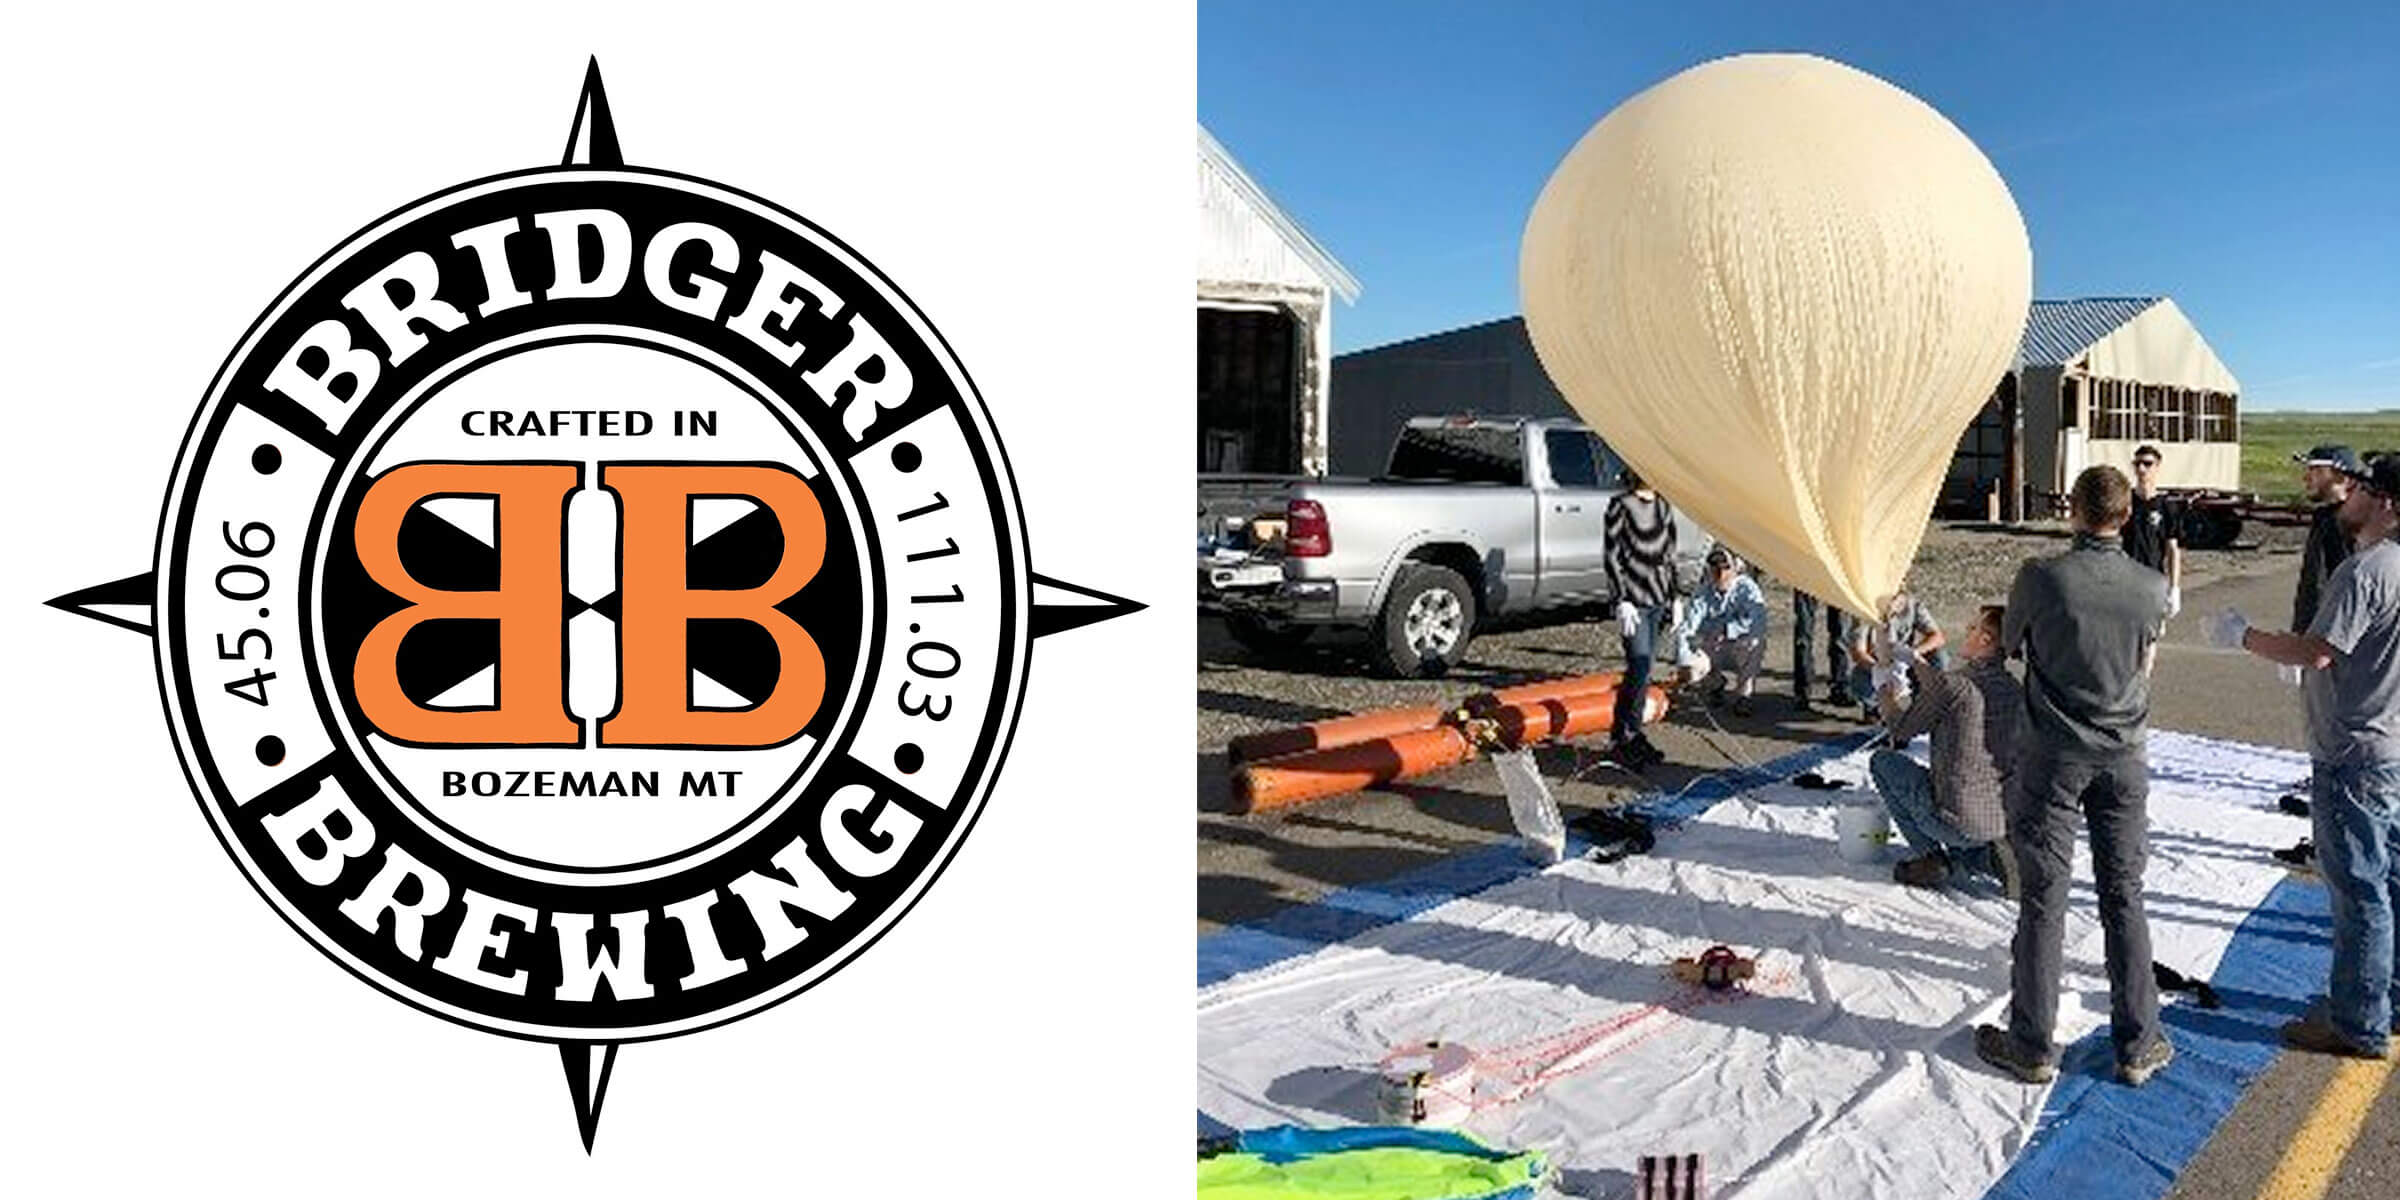 Bridger Brewing, Montana Space Grant Consortium at Montana State University, and Crooked Yard Hops have partnered to send beer ingredients into space.